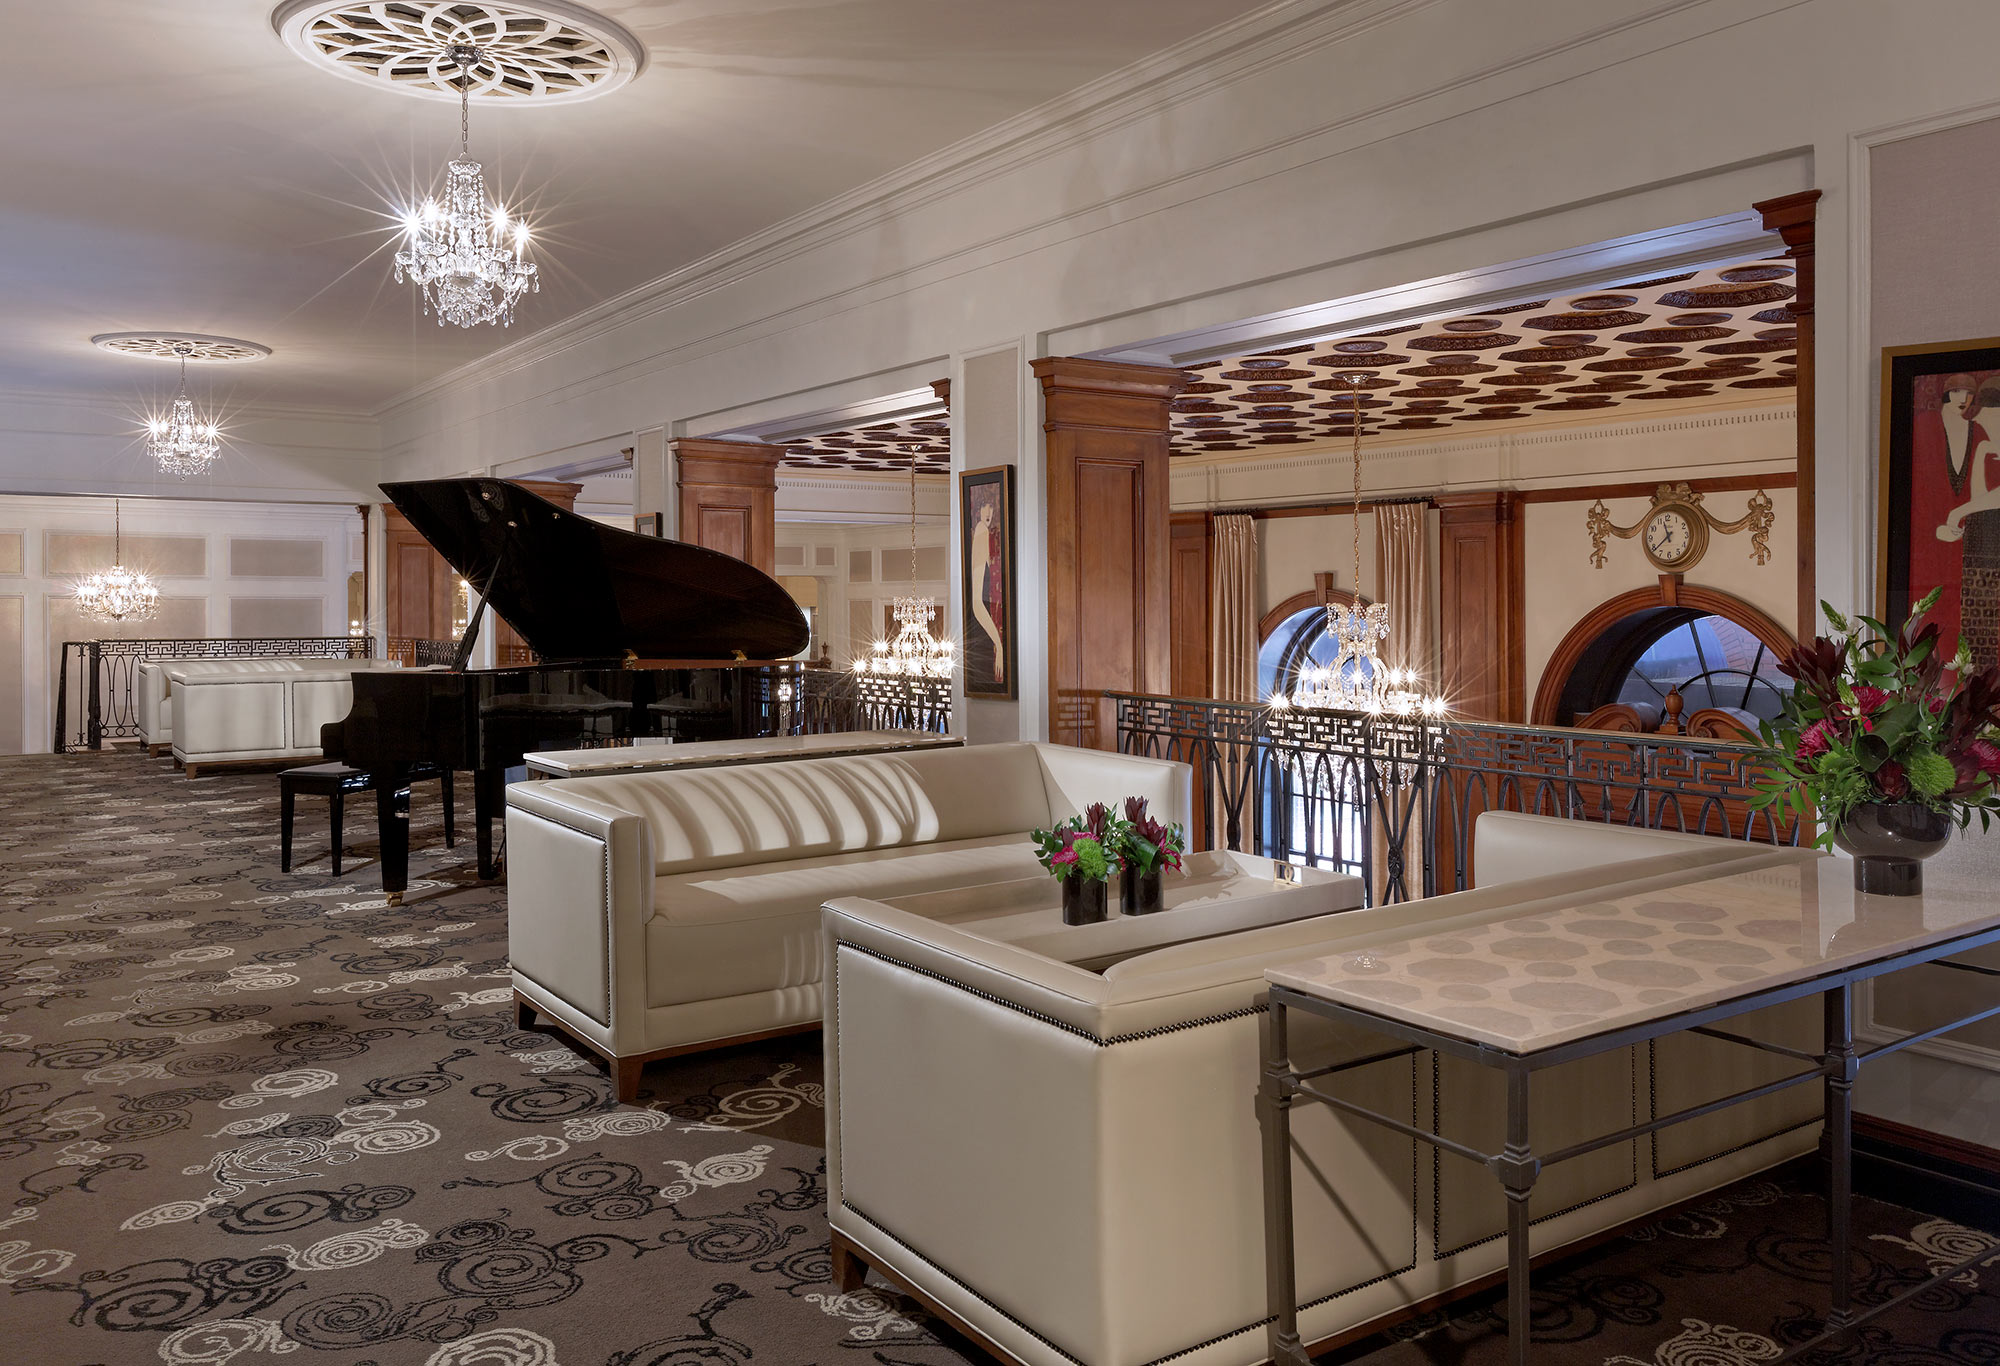 interior-design-hotel-halifax-common-area-piano.jpg